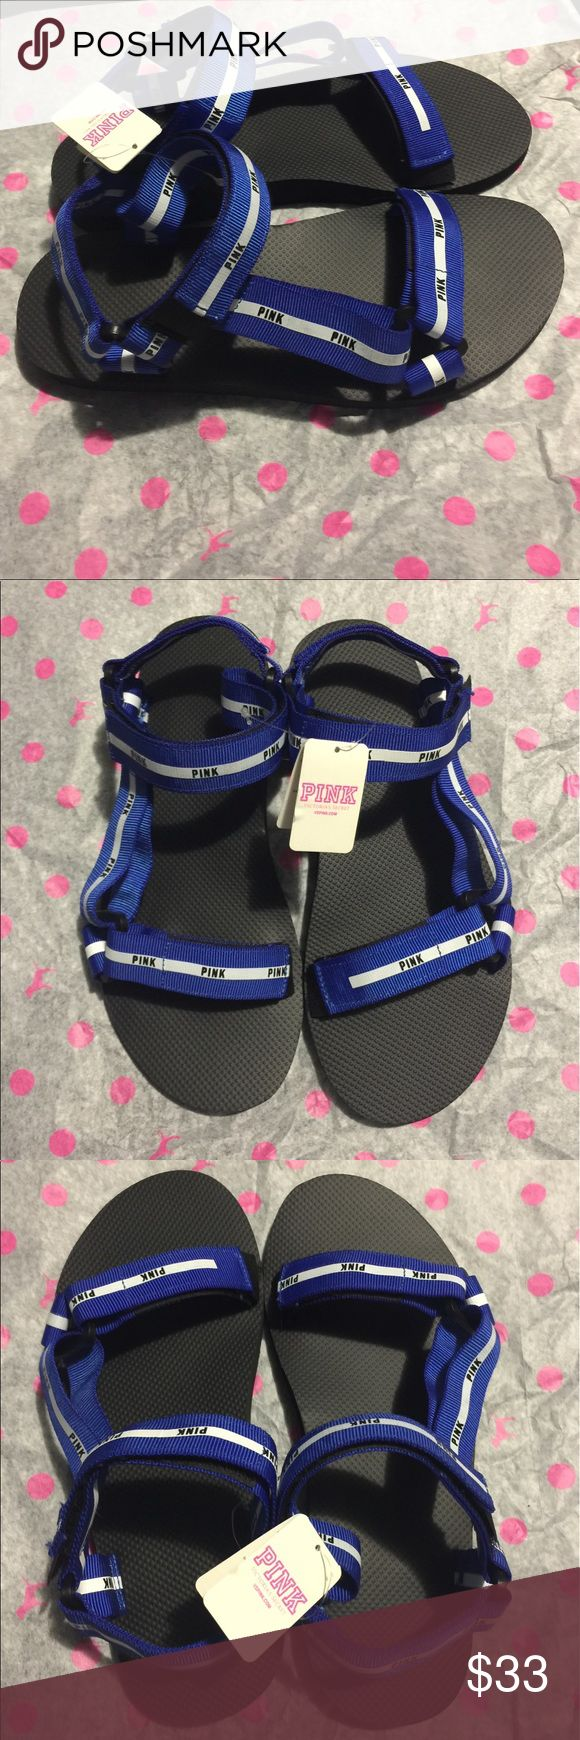 Victoria's Secret PINK Blue Velcro Strap Sandals Blue color. Size medium (7-8). Brand New With Tags. PINK Victoria's Secret Shoes